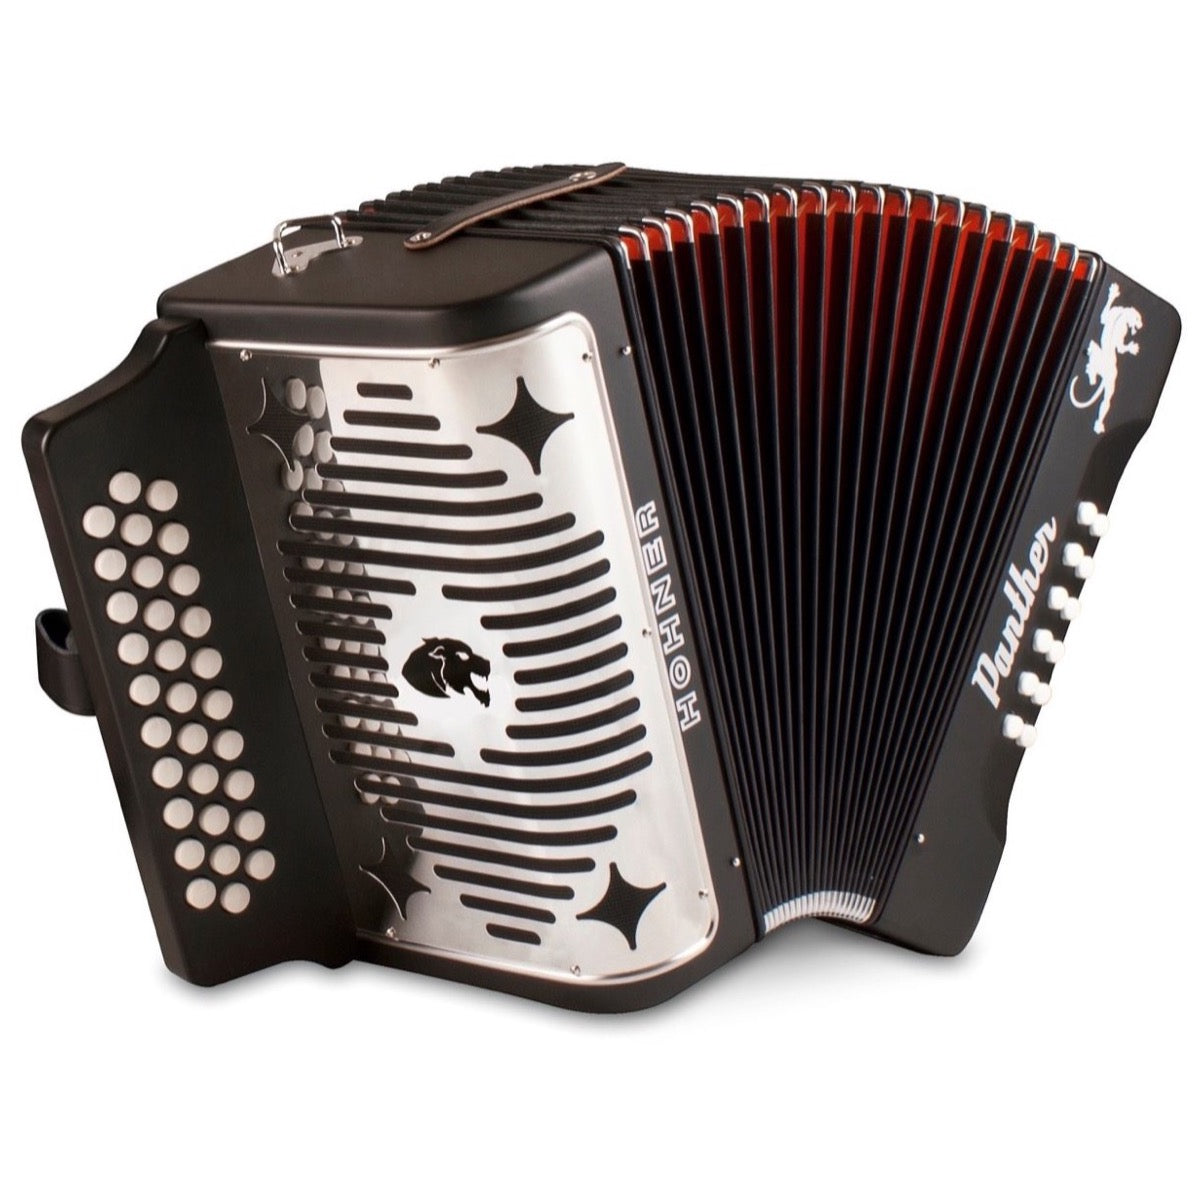 Hohner Panther Diatonic Accordion, Black, 3100FB, Key Combination F/Bb/Eb